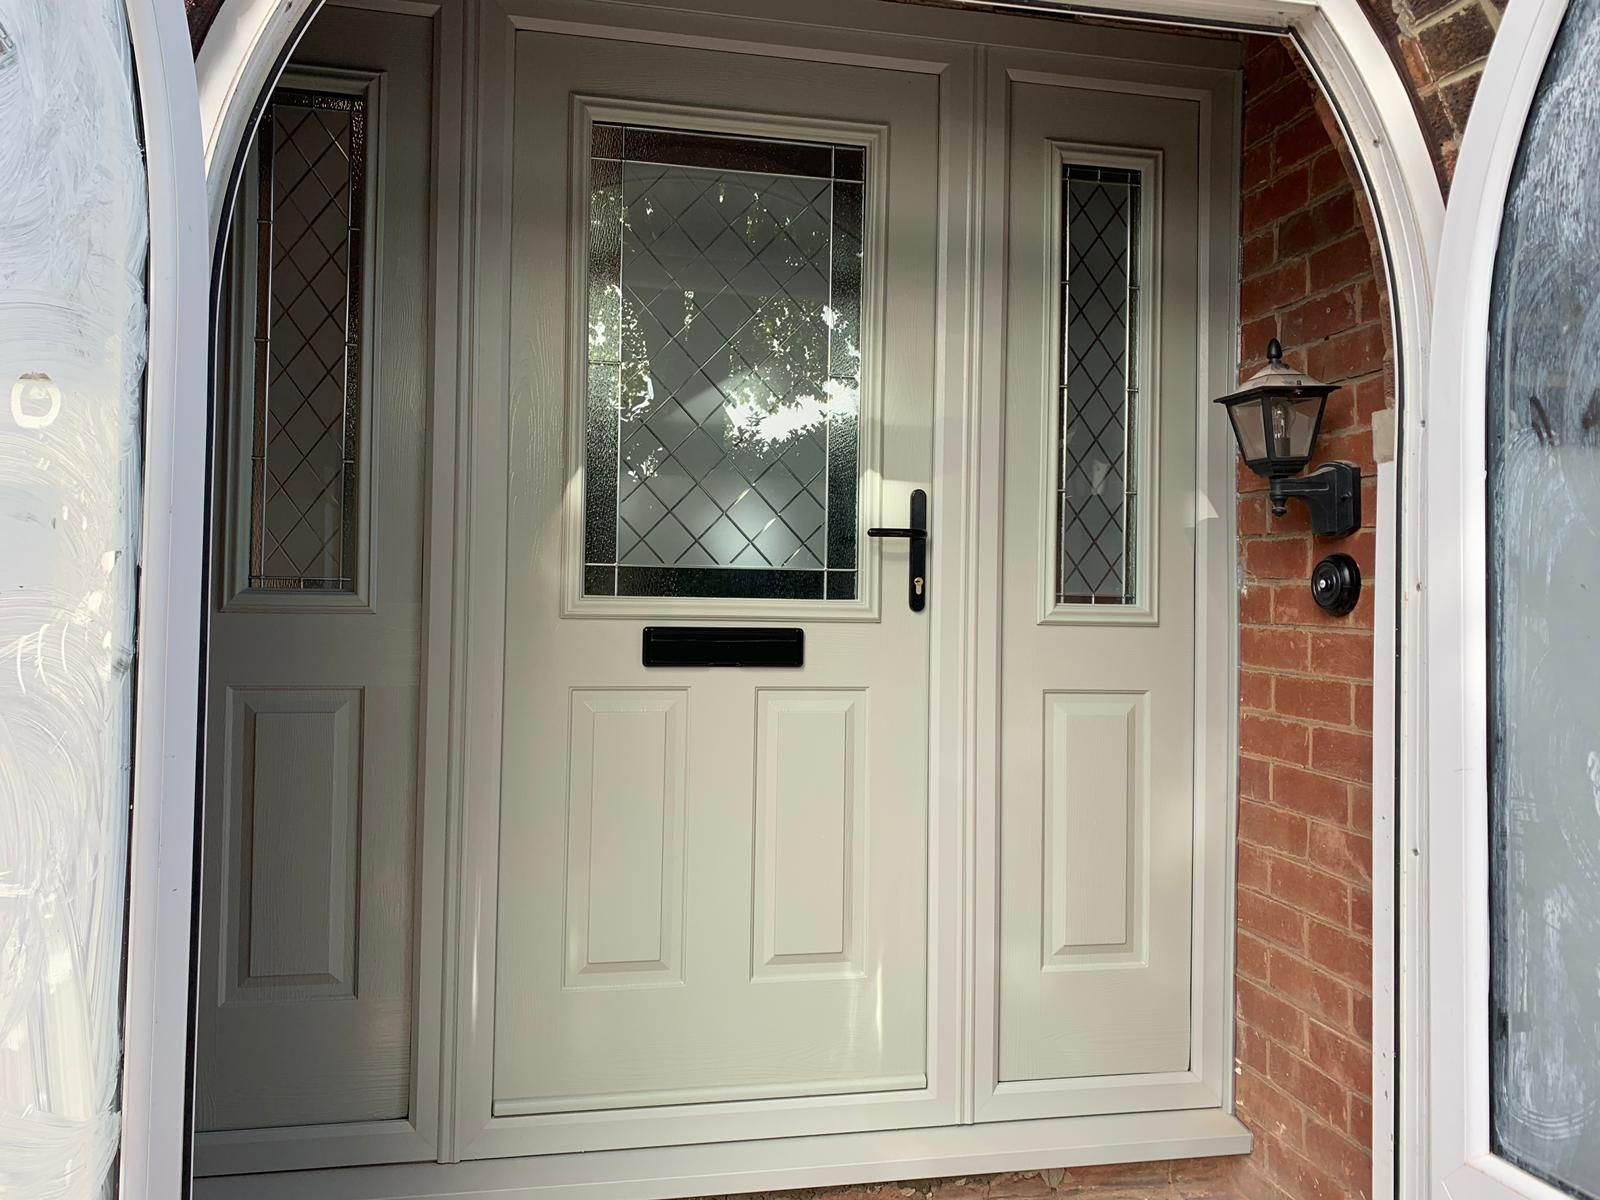 Painswick Beeston 1 Solidor Composite Door With Brilliant Glass Black Hardware And Composite Side Panels For A F Composite Door Window Company Double Glazing